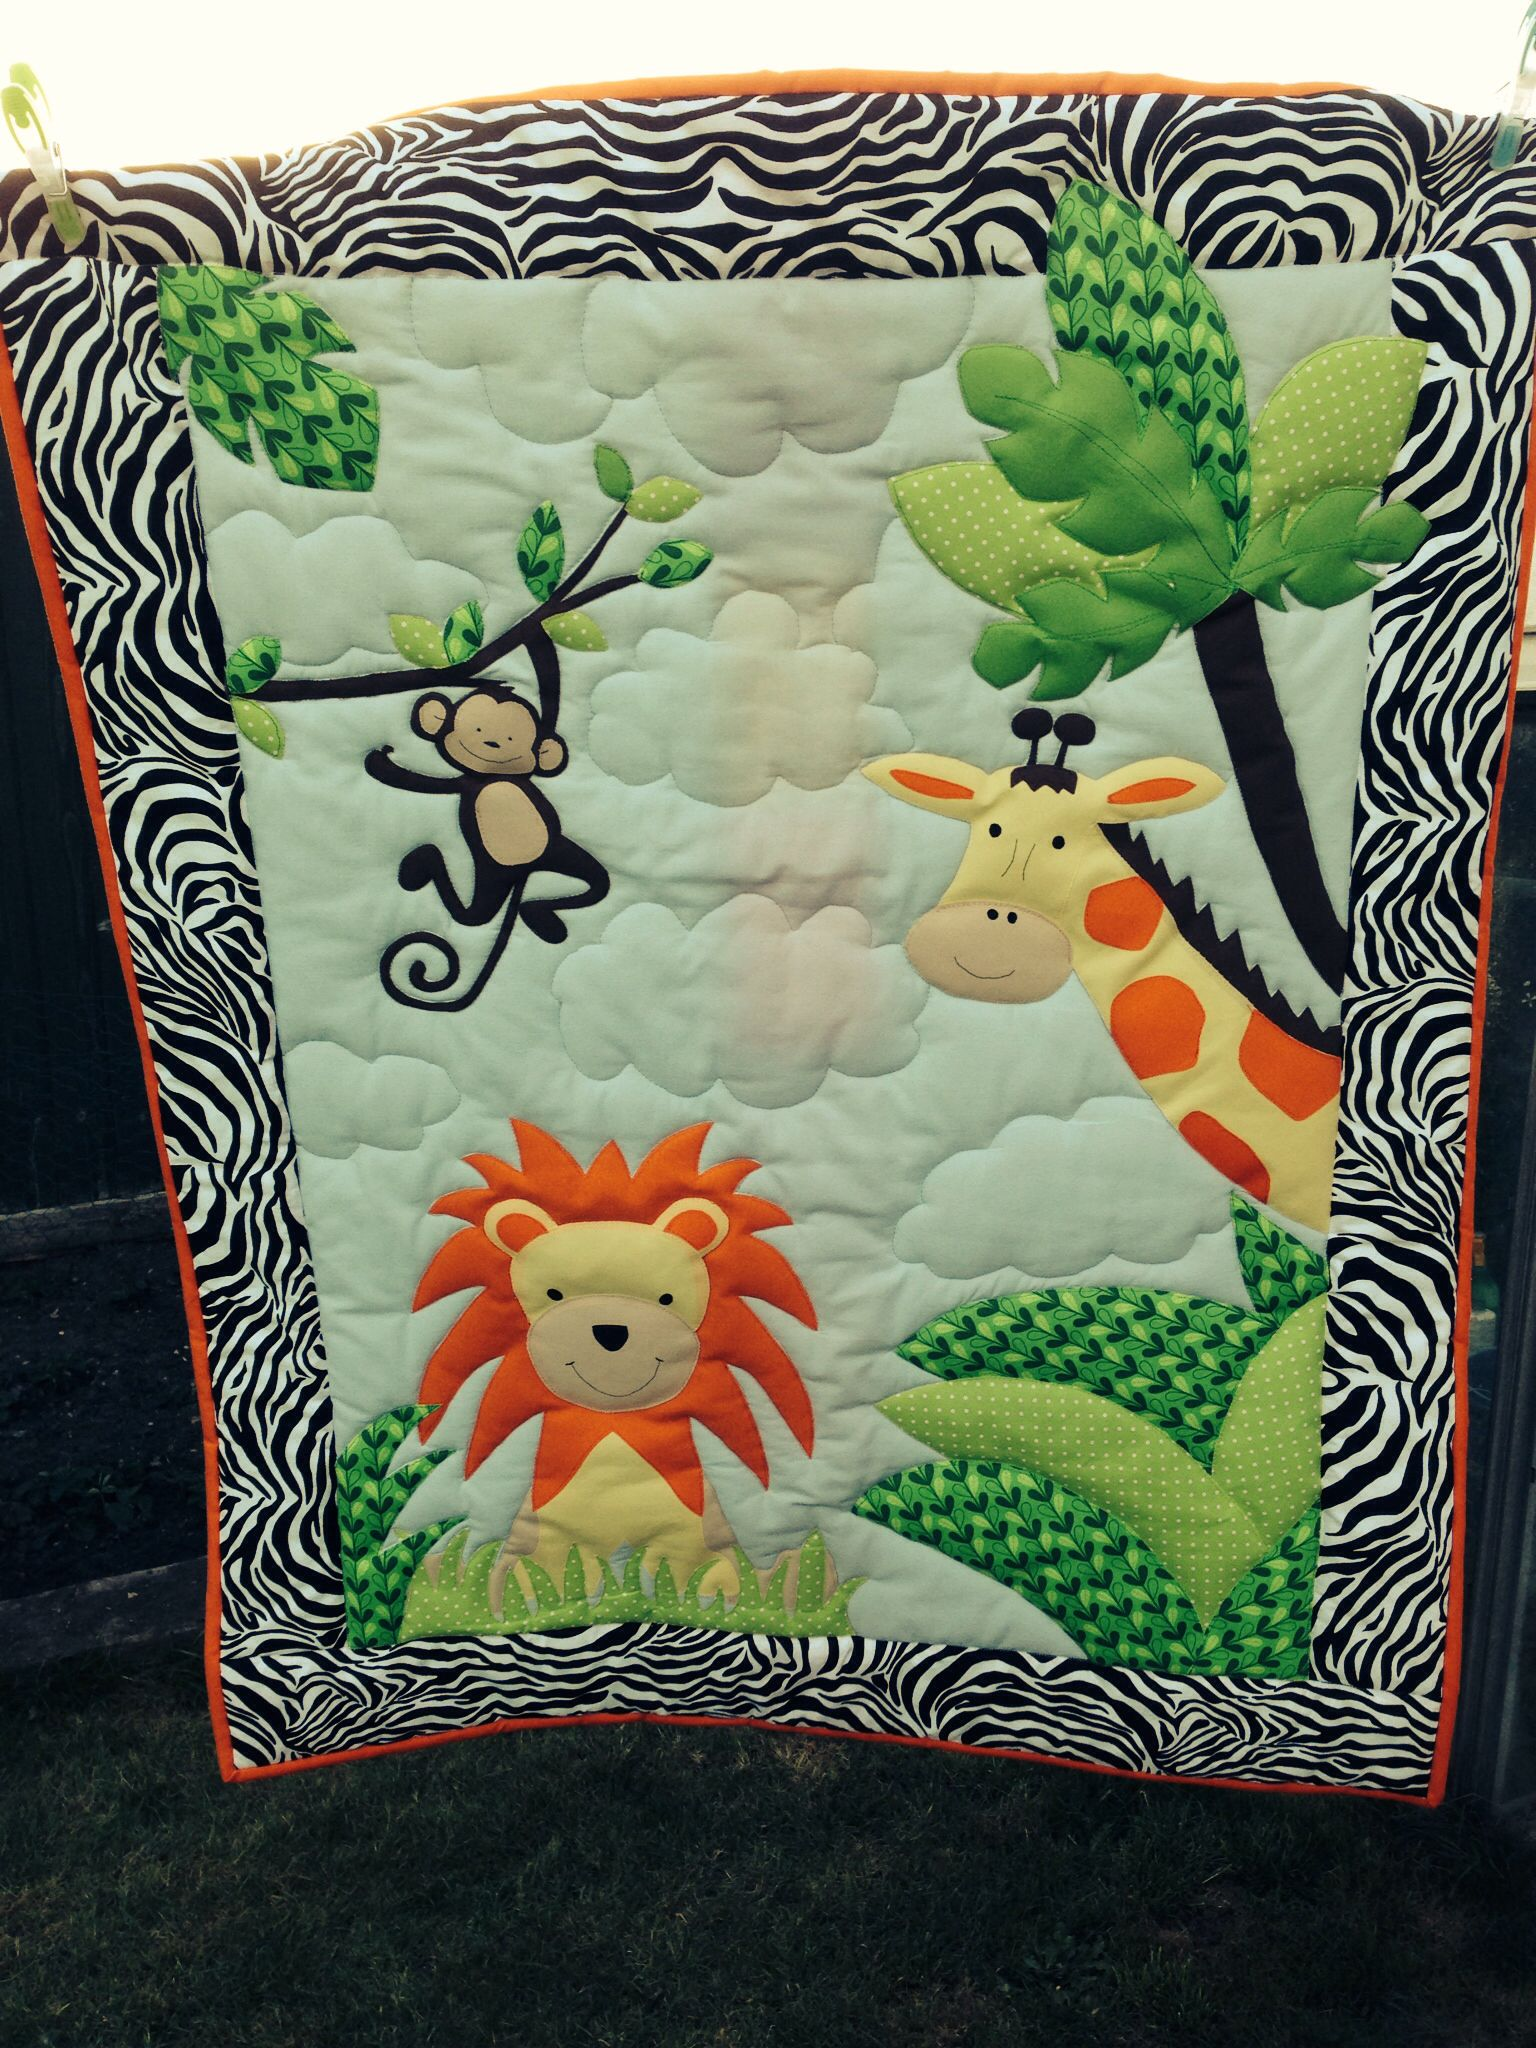 A Jungle Quilt I Made With Images